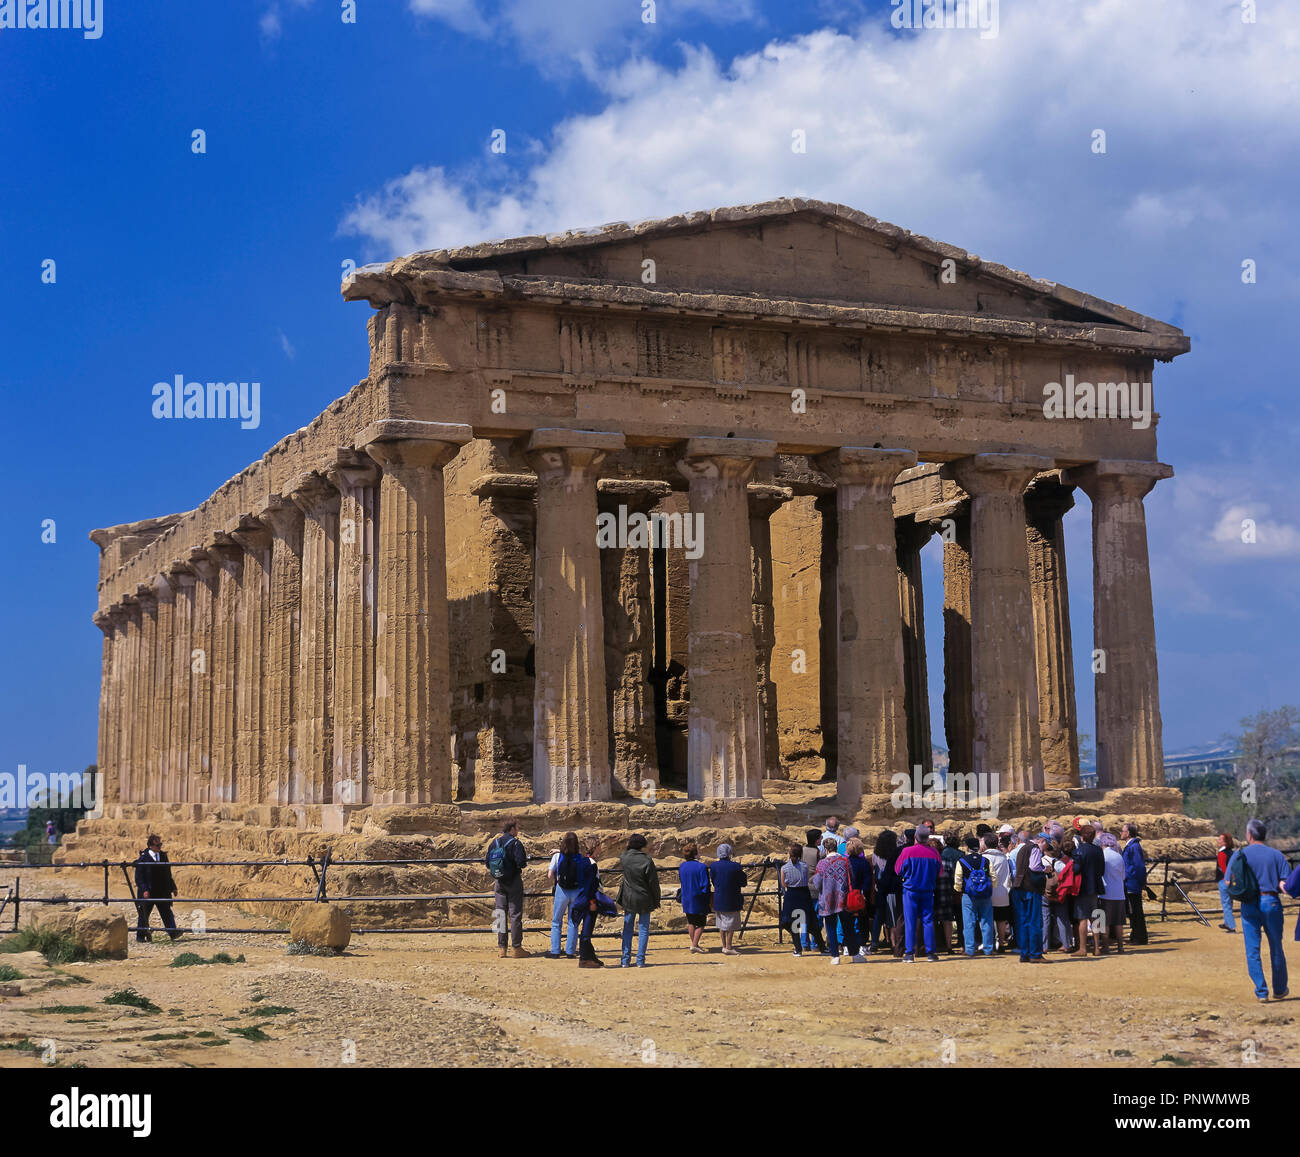 Greek temple of Concordia - 5th century BC. Valley of the temples. Agrigento. Sicily. Italy. Europe - Stock Image